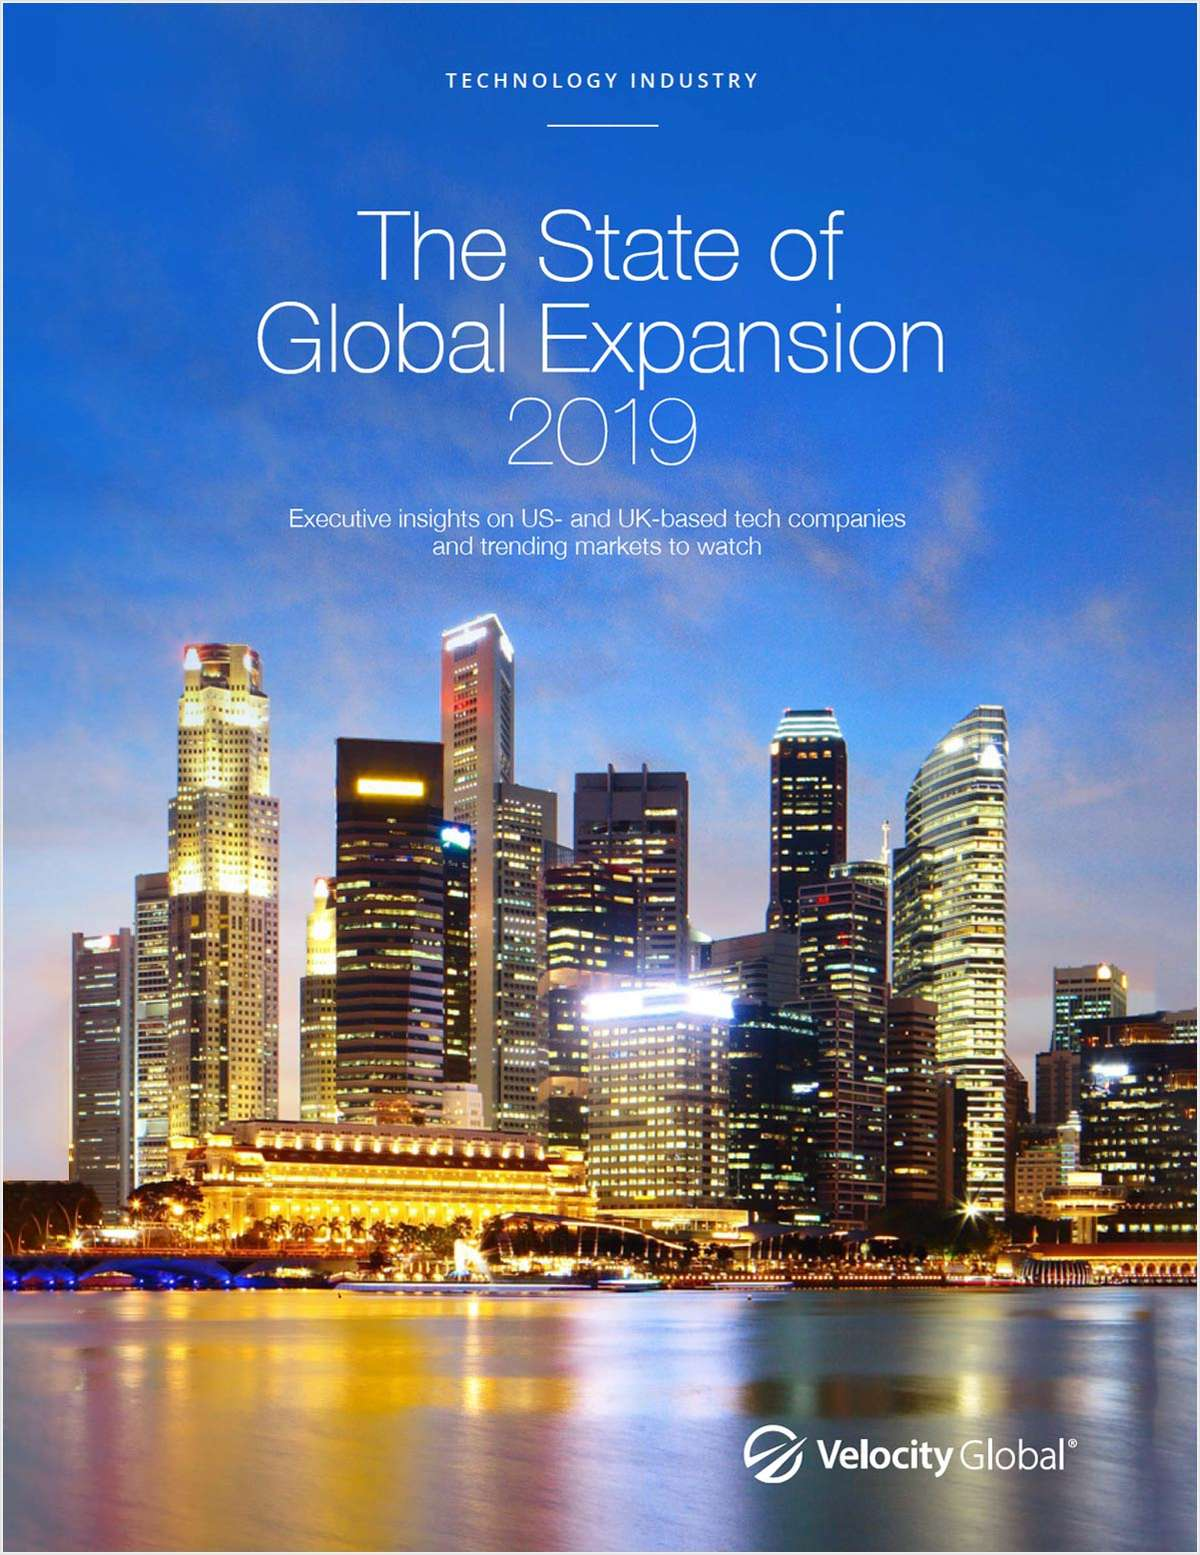 The State of Global Expansion 2019 Report: Tech Industry